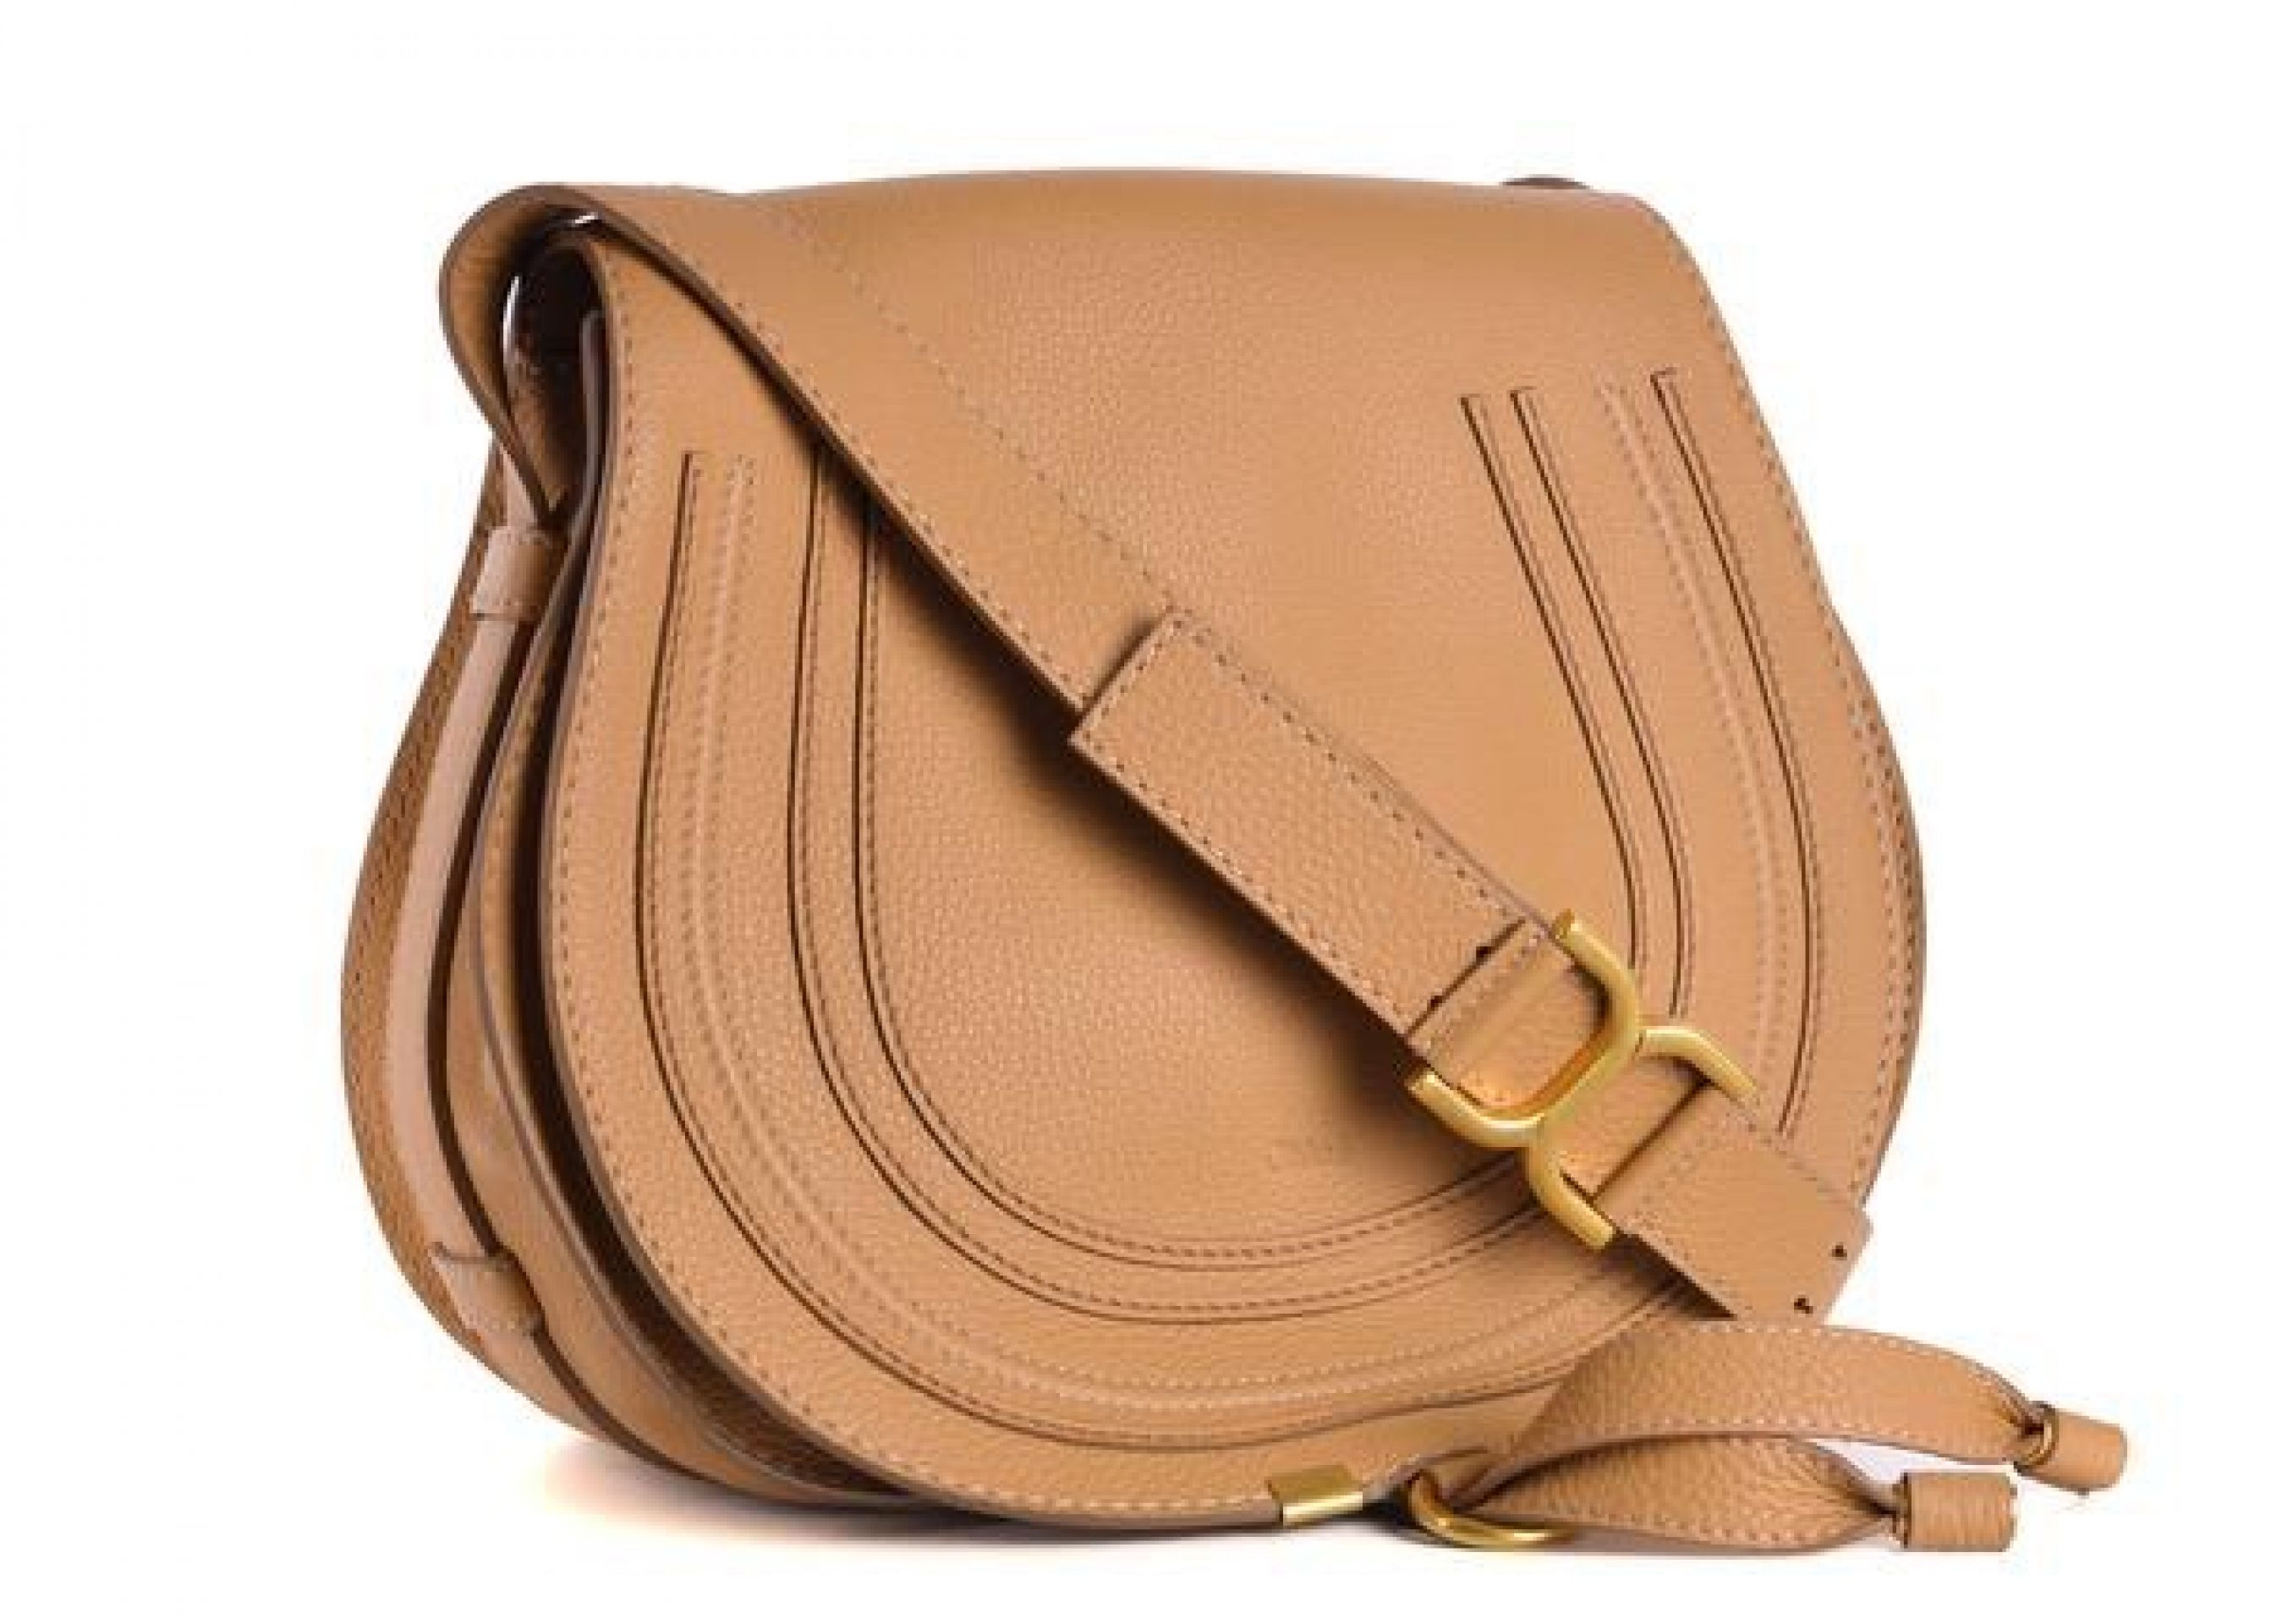 CHLOE COFFEE BROWN LEATHER MARCIE MEDIUM CROSSBODY SHOULDER BAG